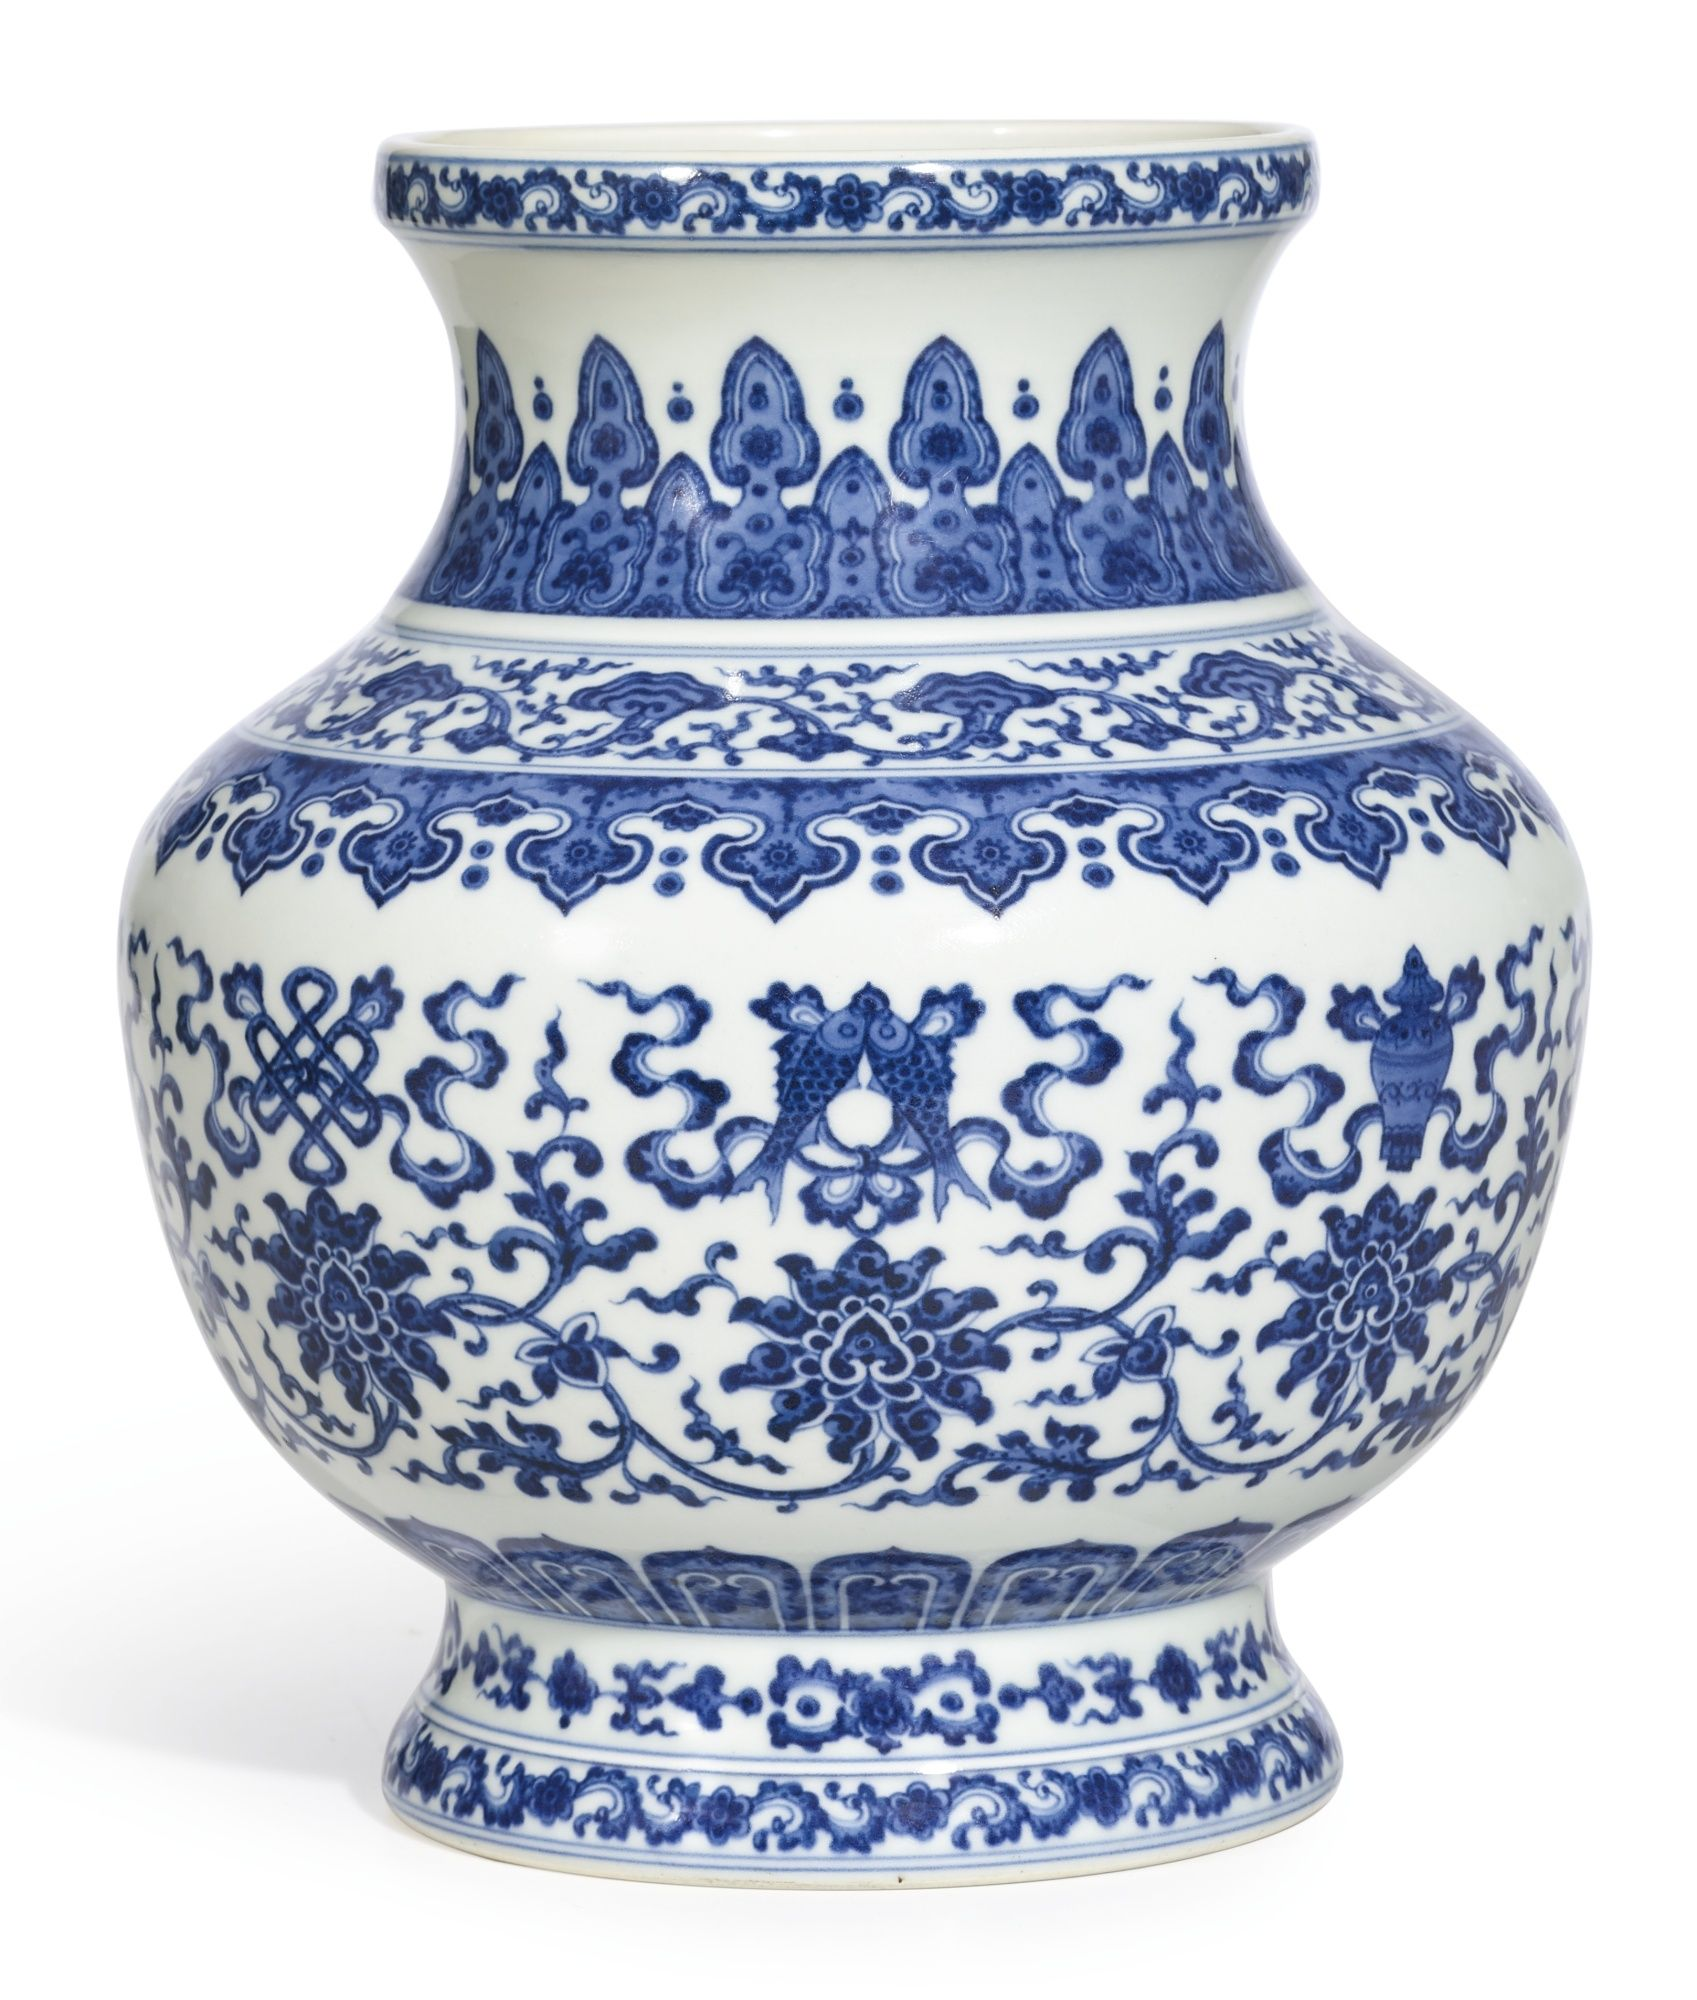 A blue and white vase yuhuchunping qianlong seal mark and period a blue and white bajixiang vase zun seal mark and period of qianlong alain reviewsmspy